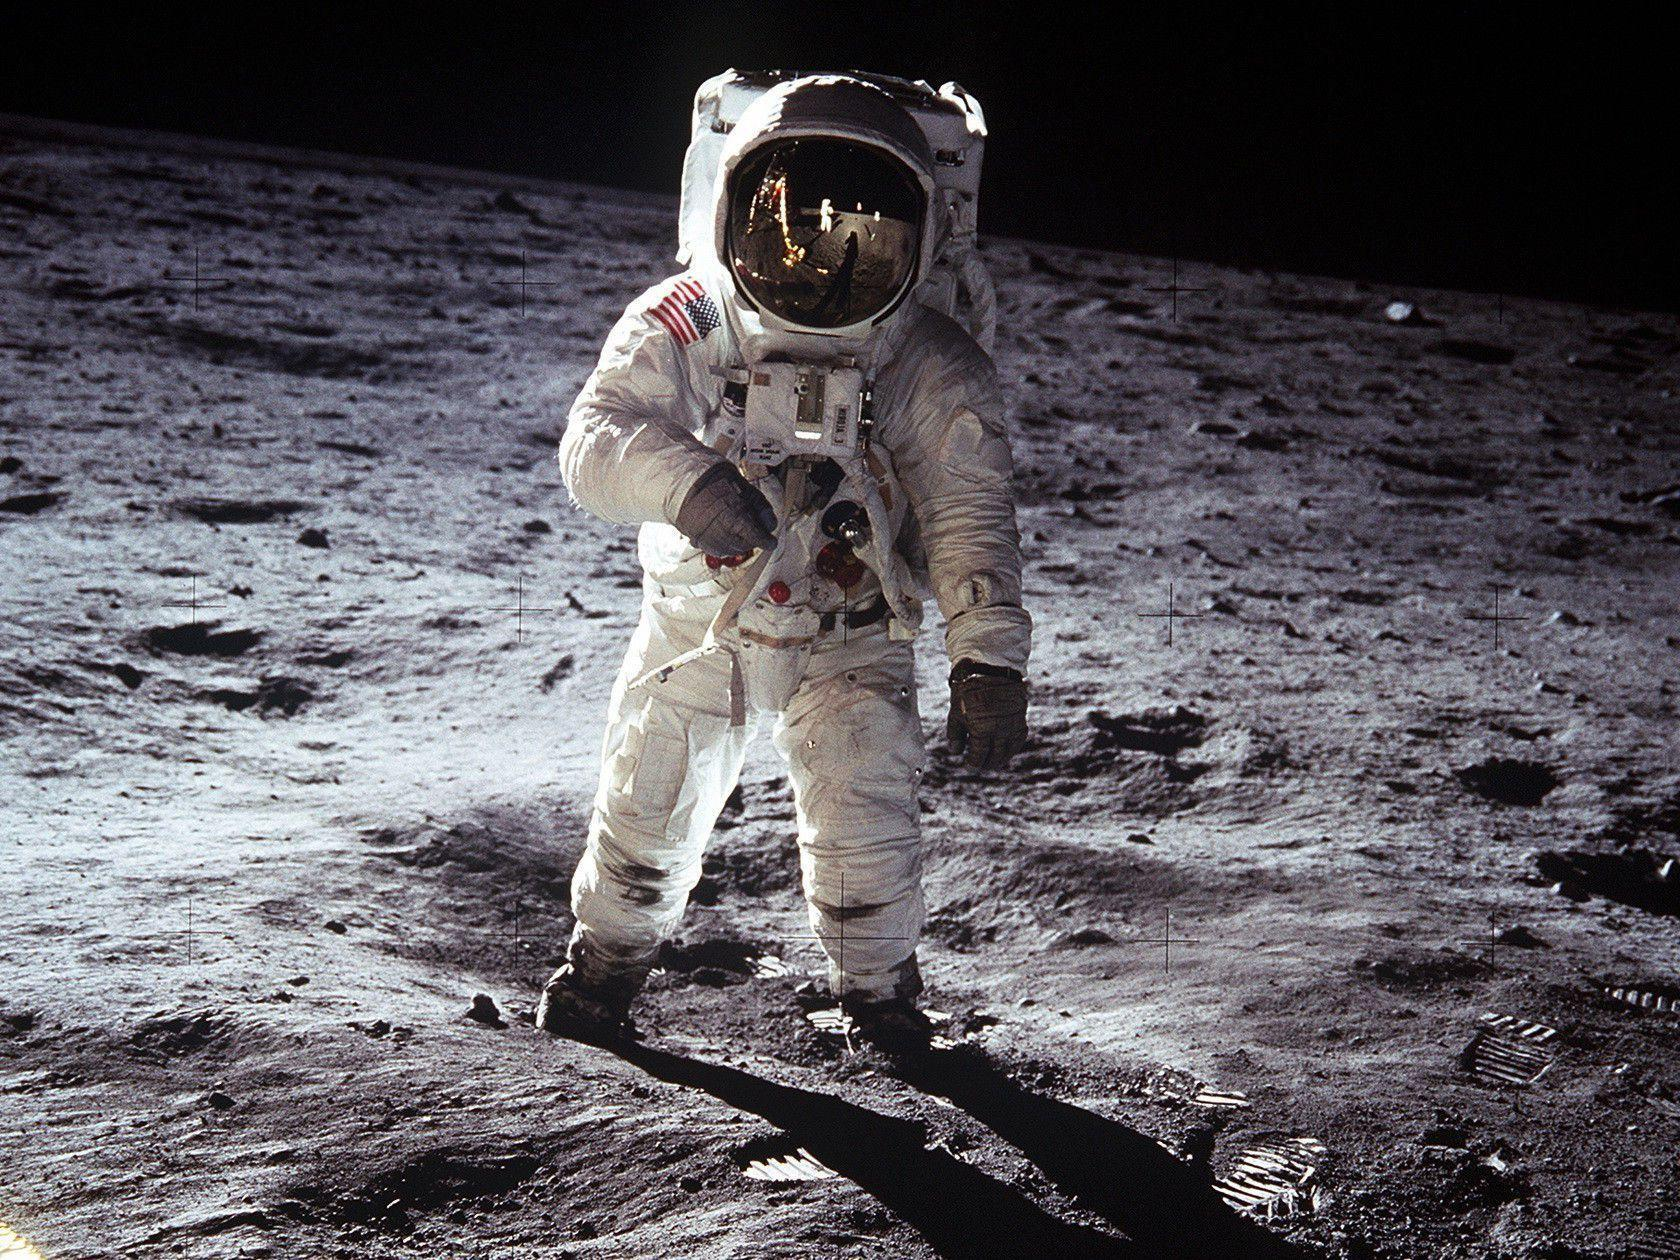 apollo missions wallpaper - photo #8